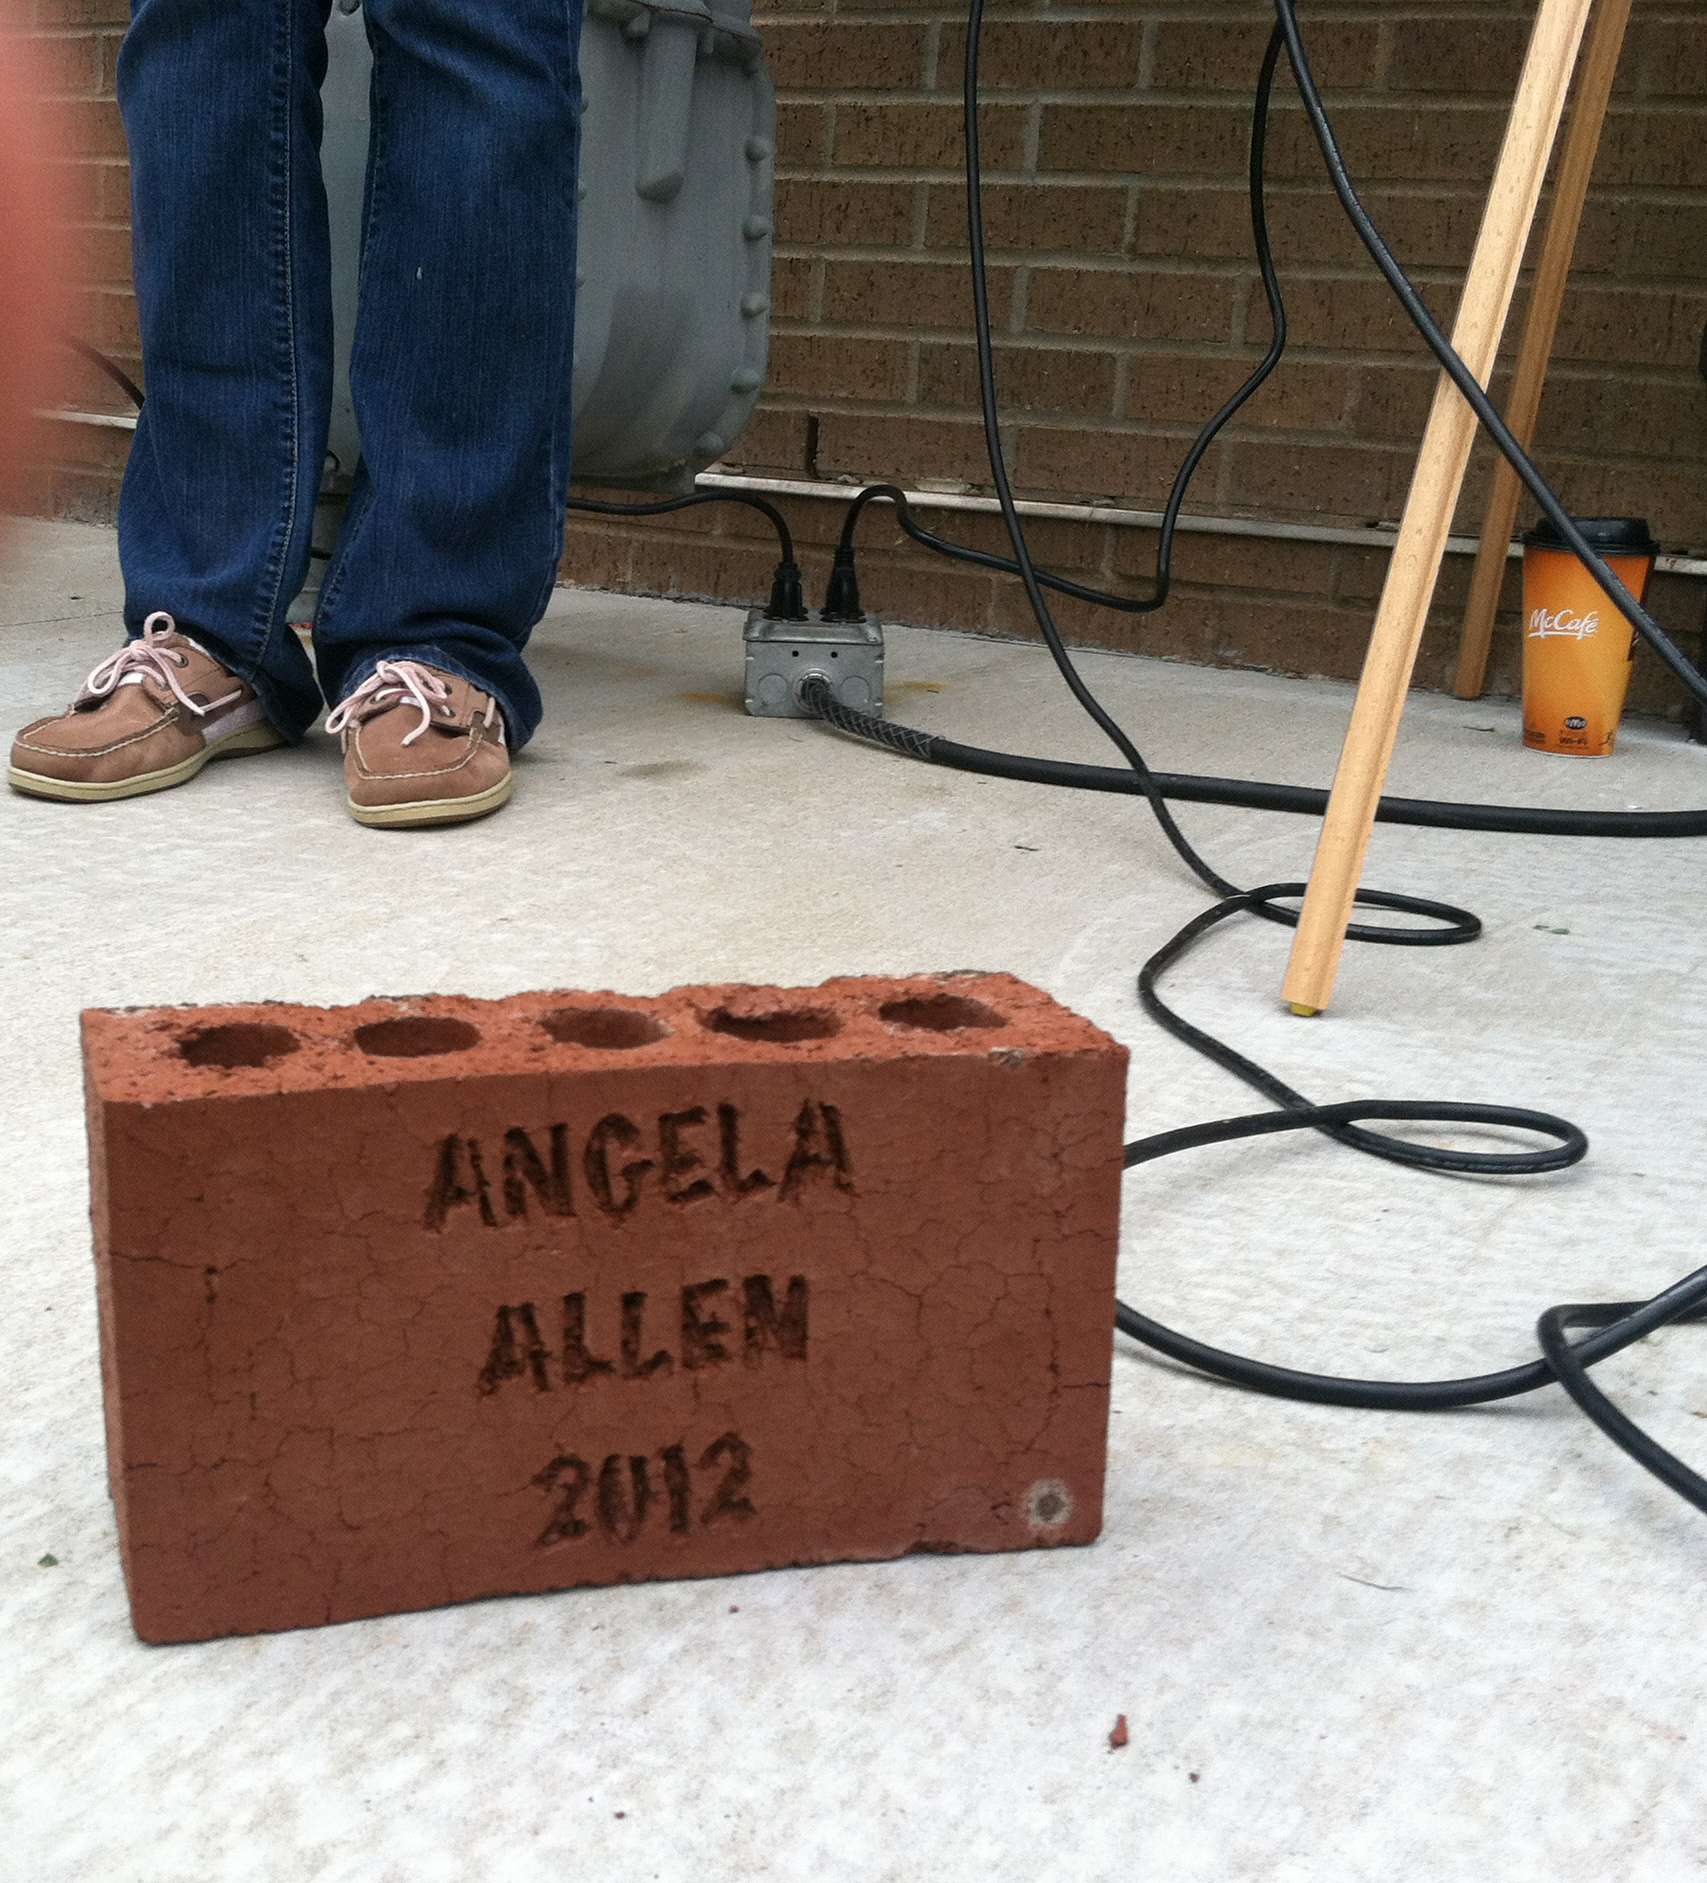 Tree planted in honor of Angela Allen